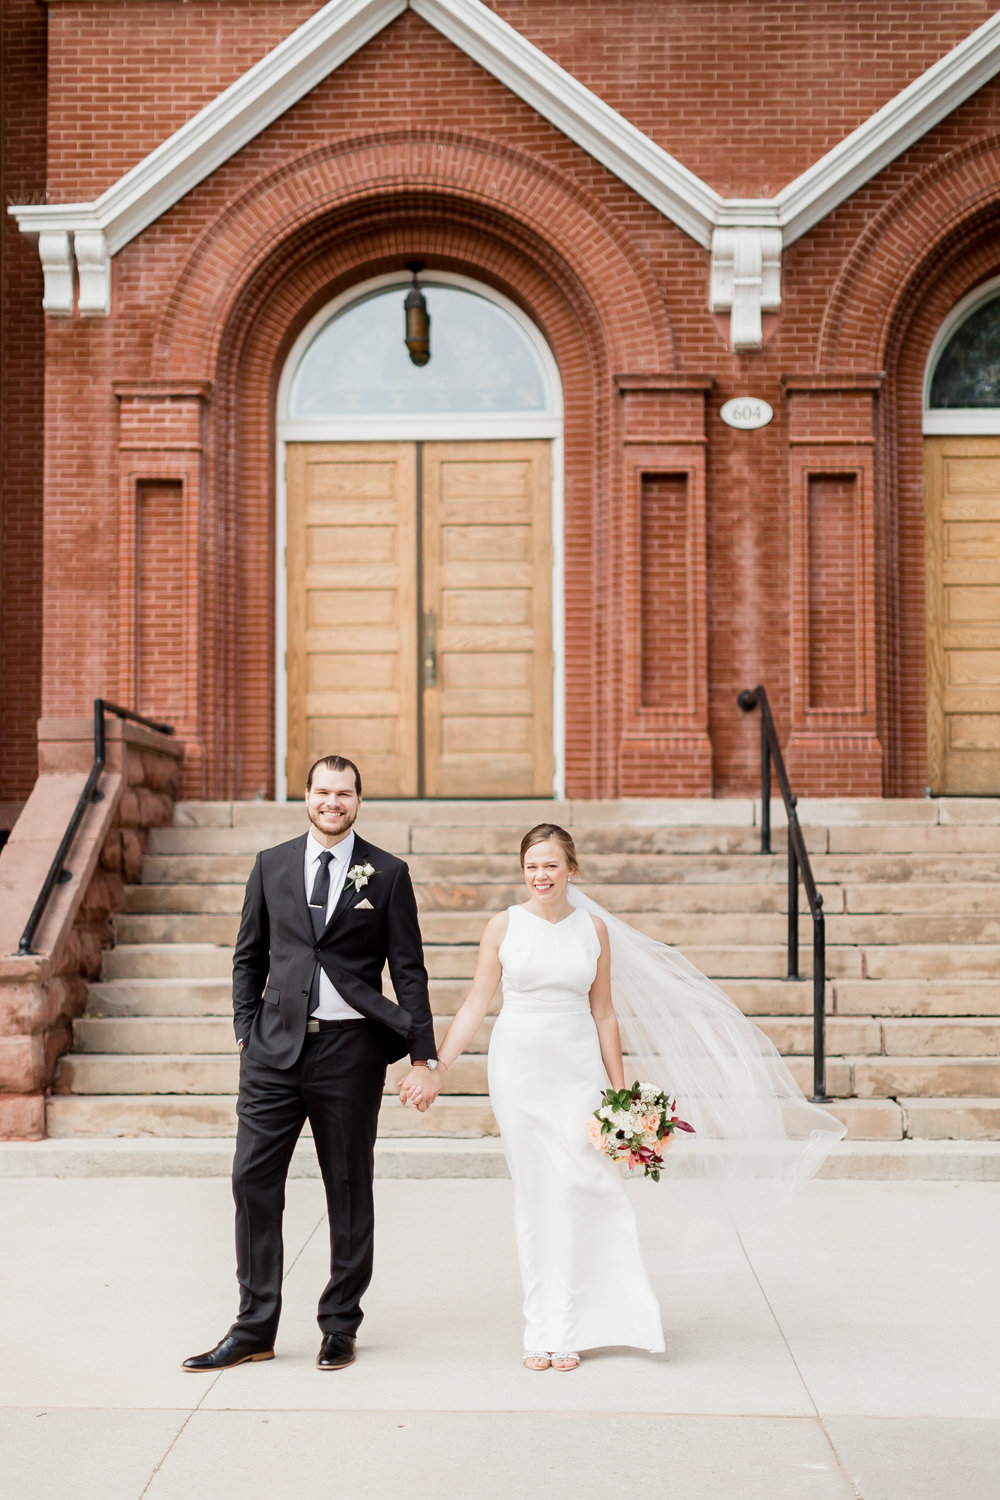 Abigail Berge Photography_JansenWedding-293.jpg